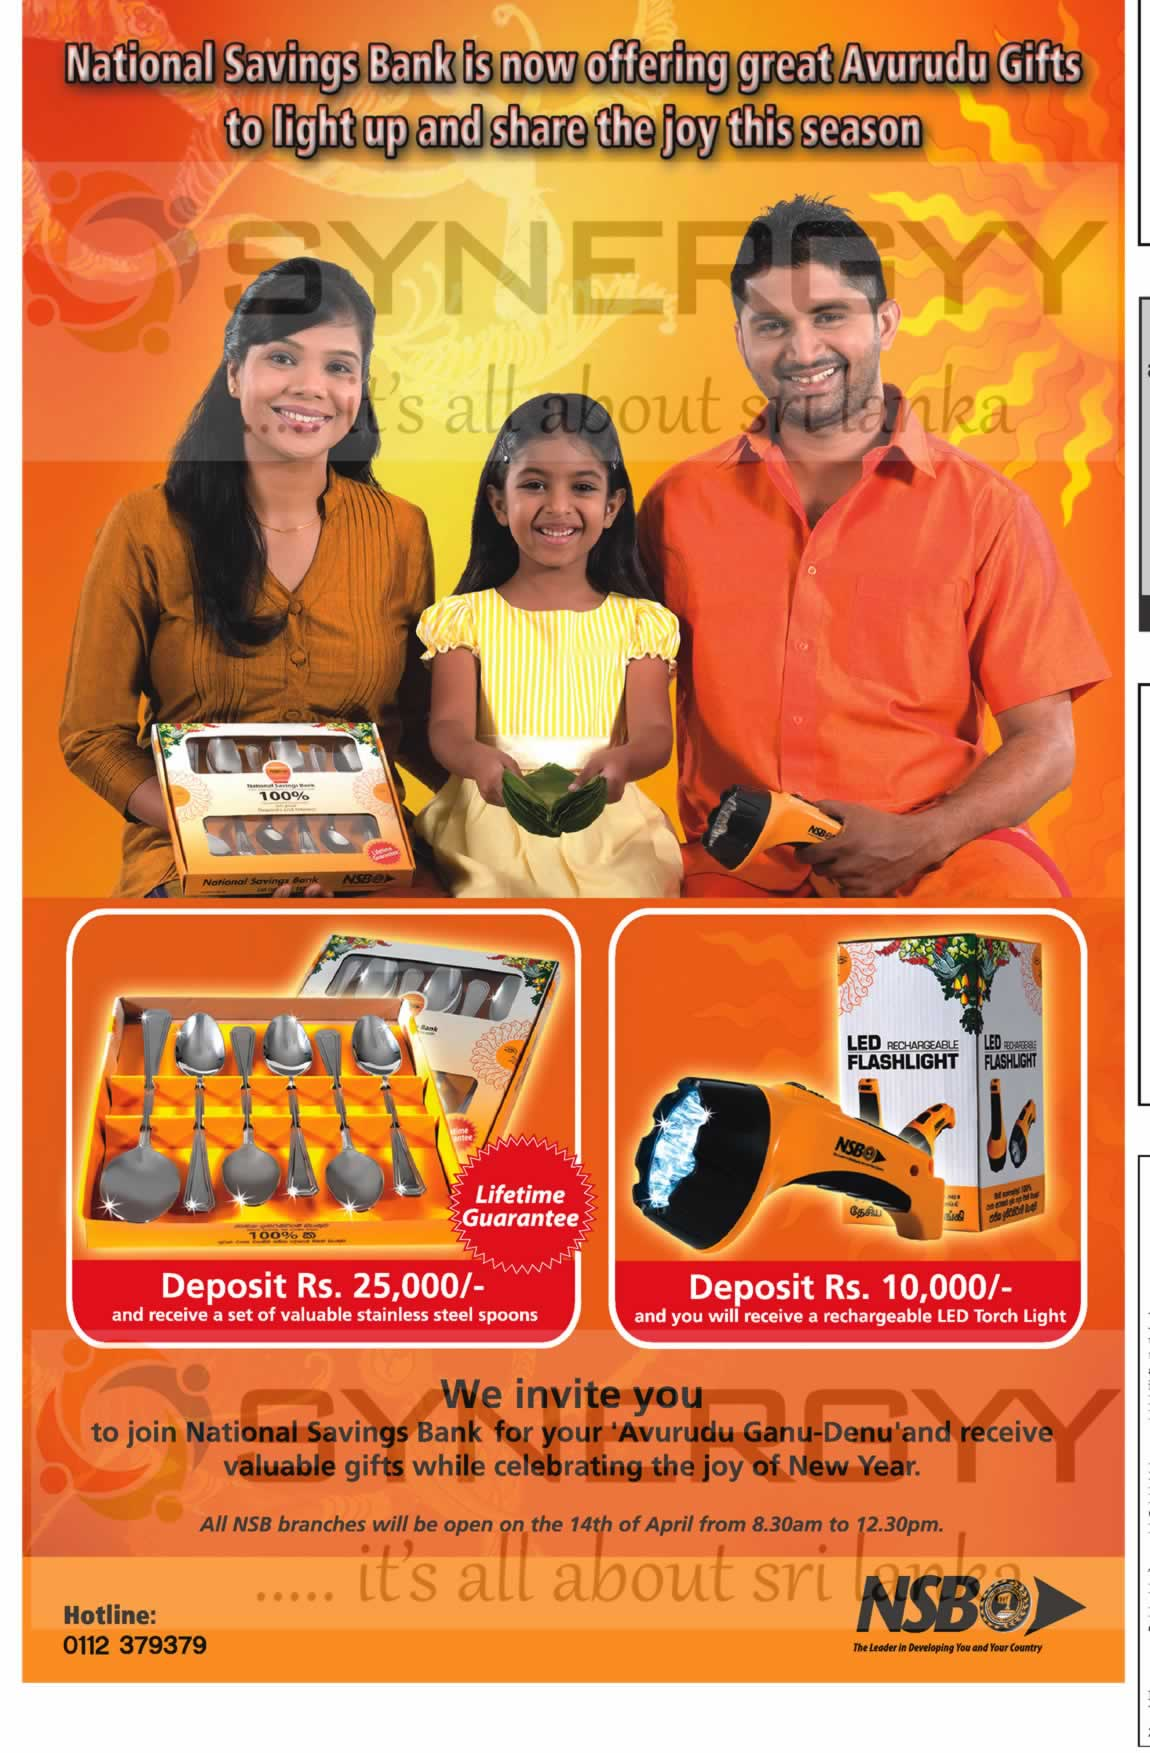 NSB New Year Gifts for Sinhala Tamil New Year 2013